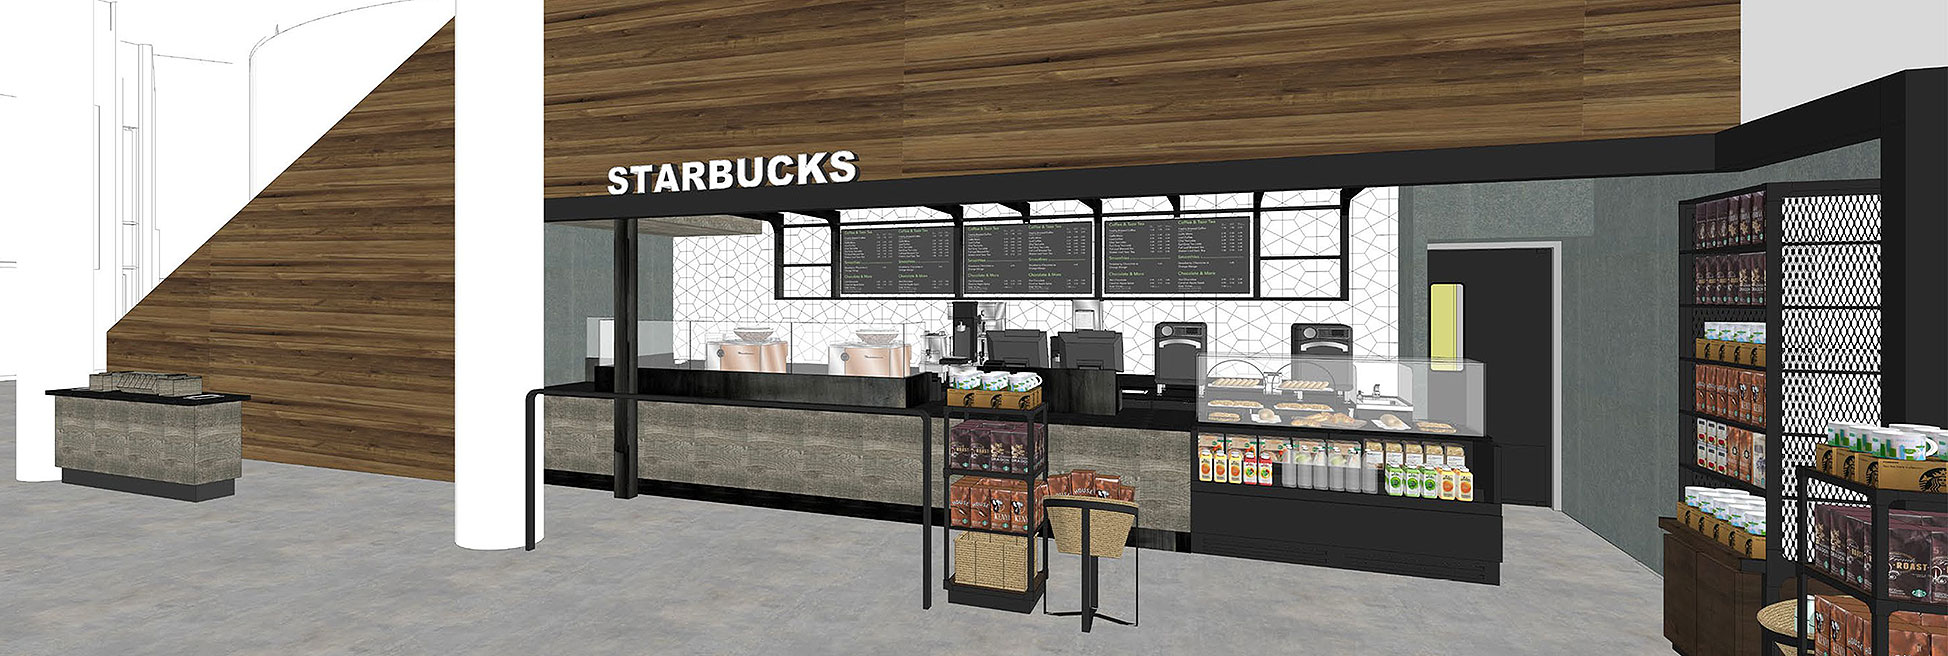 Starbucks Planned In New Digital Classroom Building